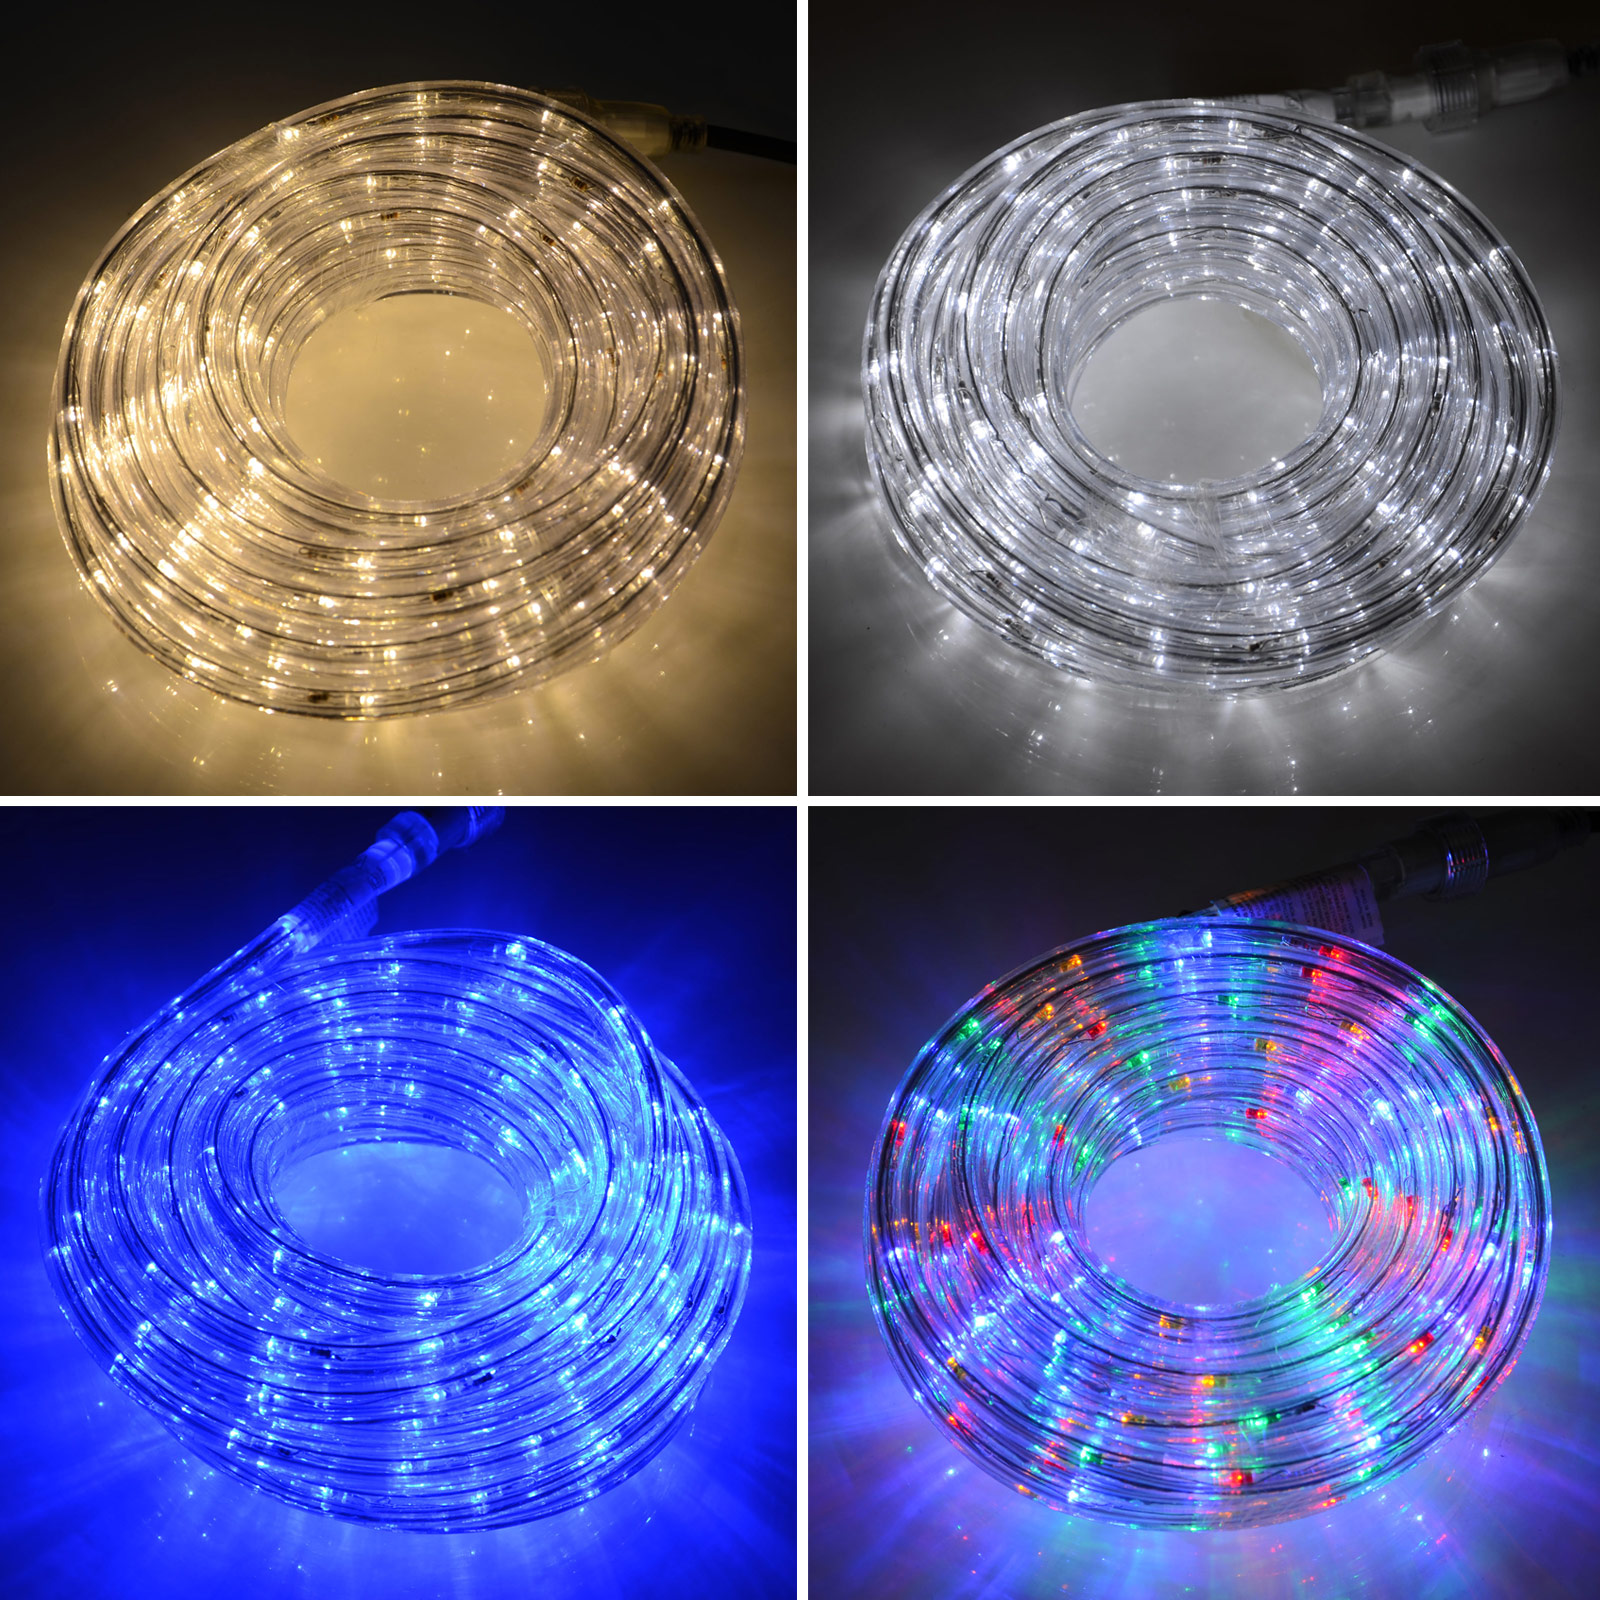 Led rope light power cable indoor or outdoor christmas lighting